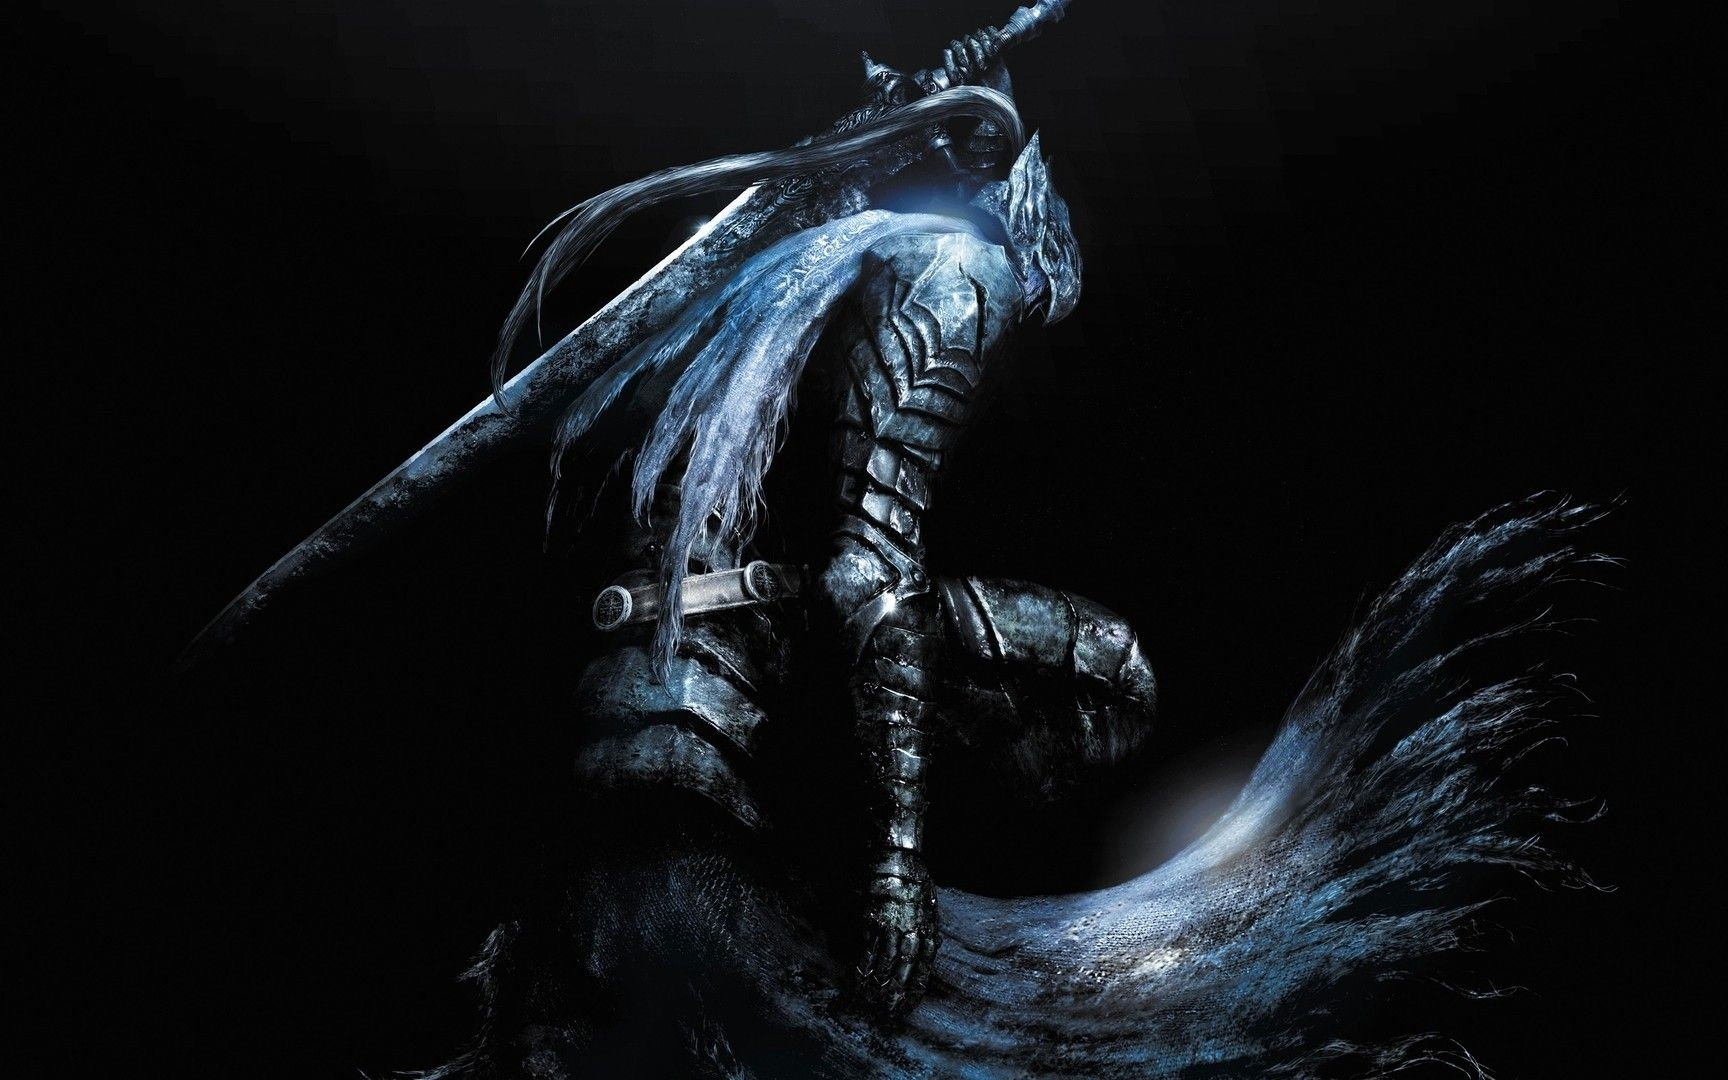 knight artorias - dark souls hd formidable wallpaper free | adorable